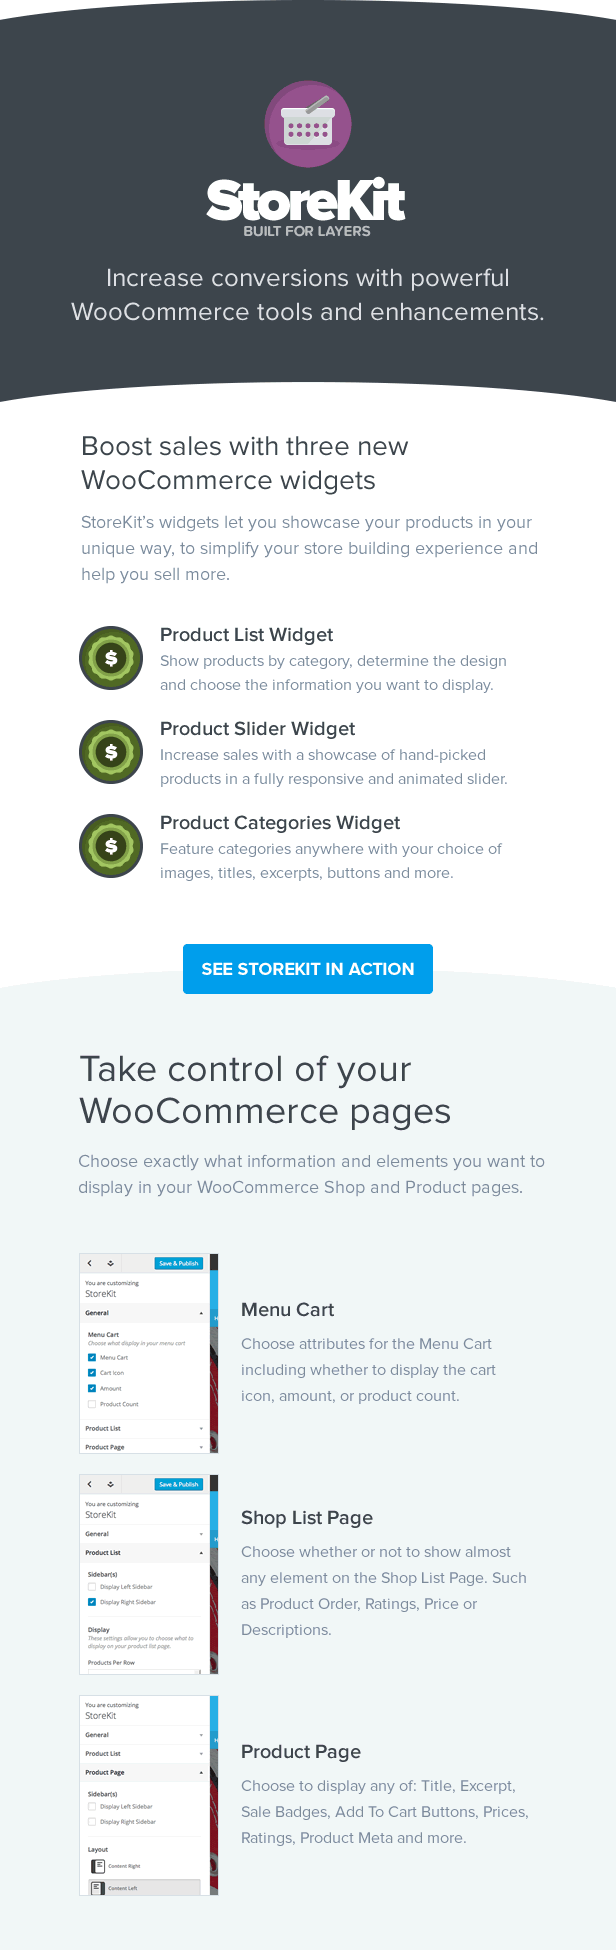 StoreKit - WooCommerce for Layers